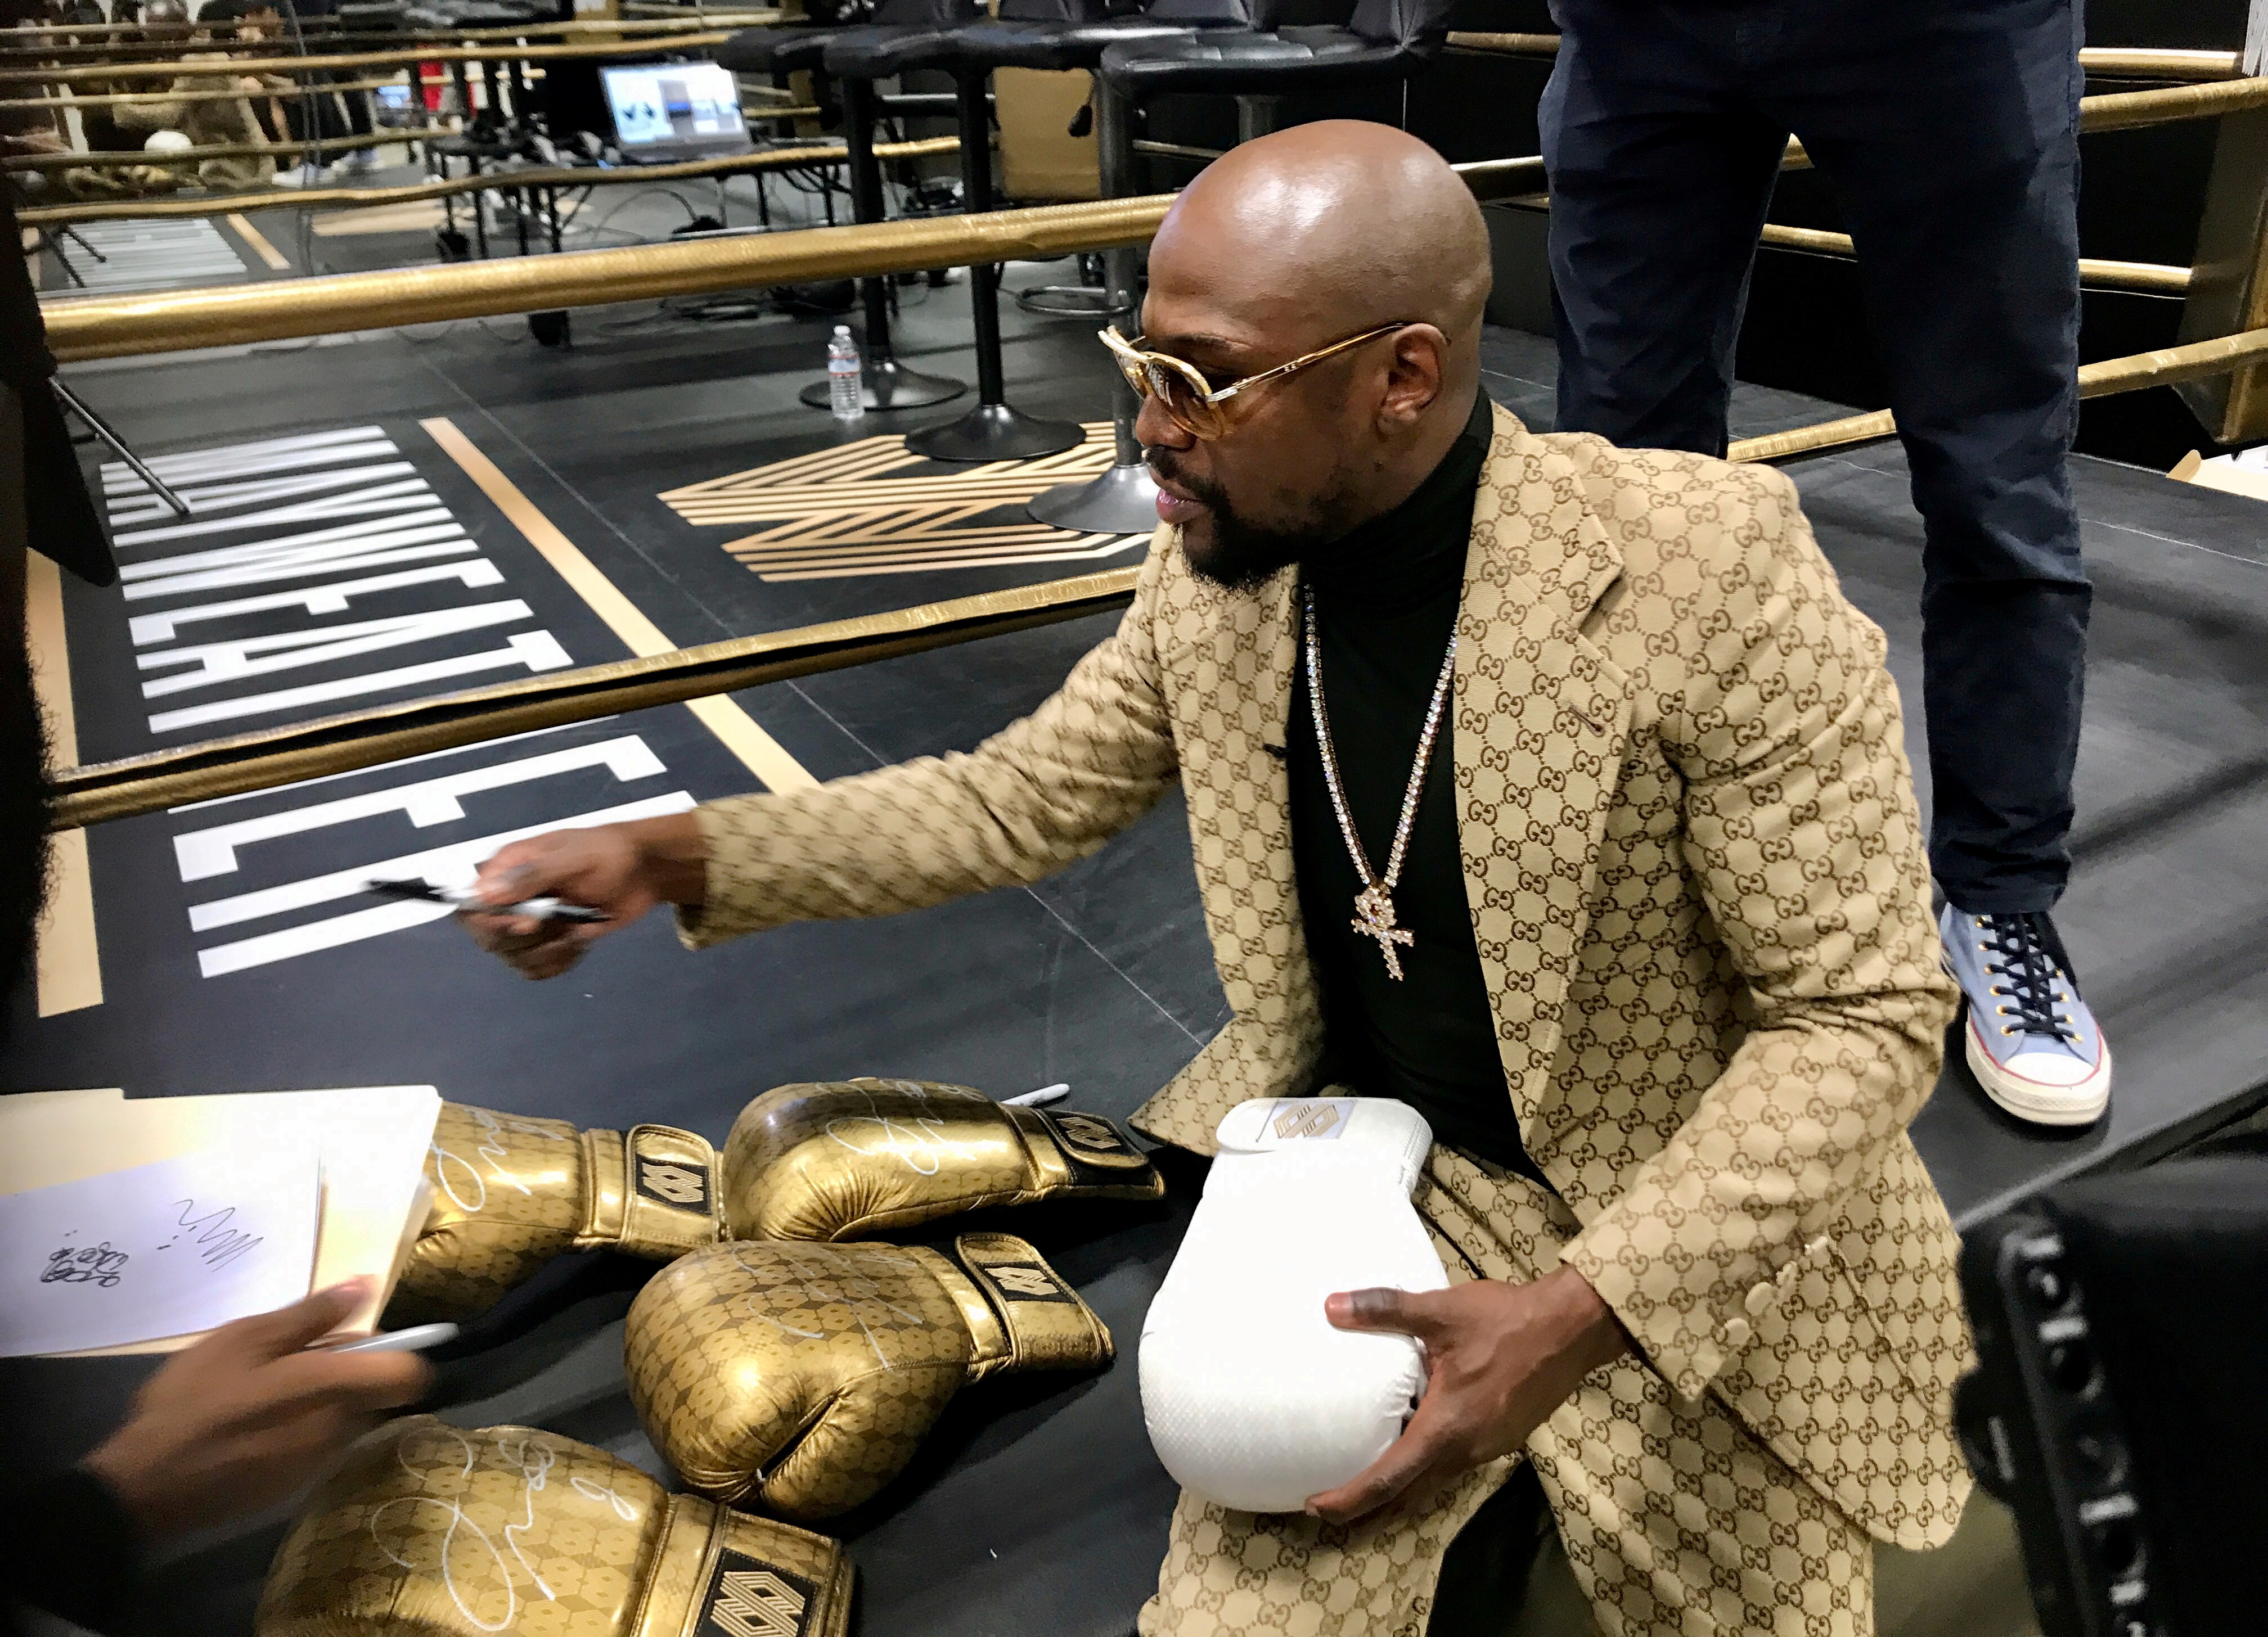 Floyd Mayweather signs gloves at the opening of the Mayweather Boxing + Fitness gym in Torrance, California, U.S., November 16, 2019.  REUTERS/Rory Carroll/File Photo